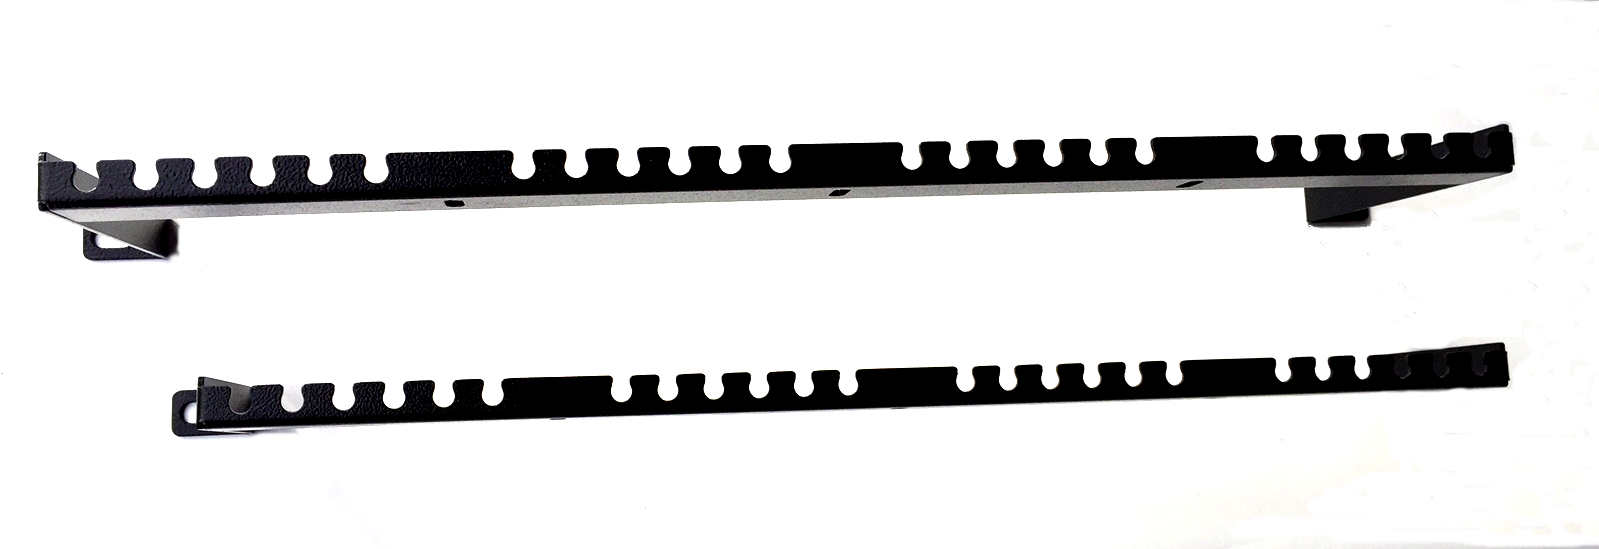 cable management brackets  patch panels  u0026 switch bars for data centers